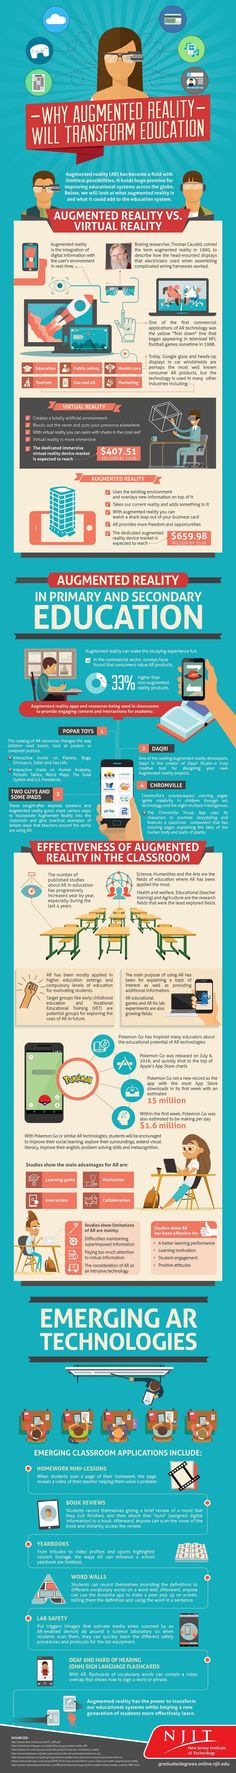 Augmented reality has the potential to revolutionize learning in primary and secondary schools more than any other technology has done in the recent past.